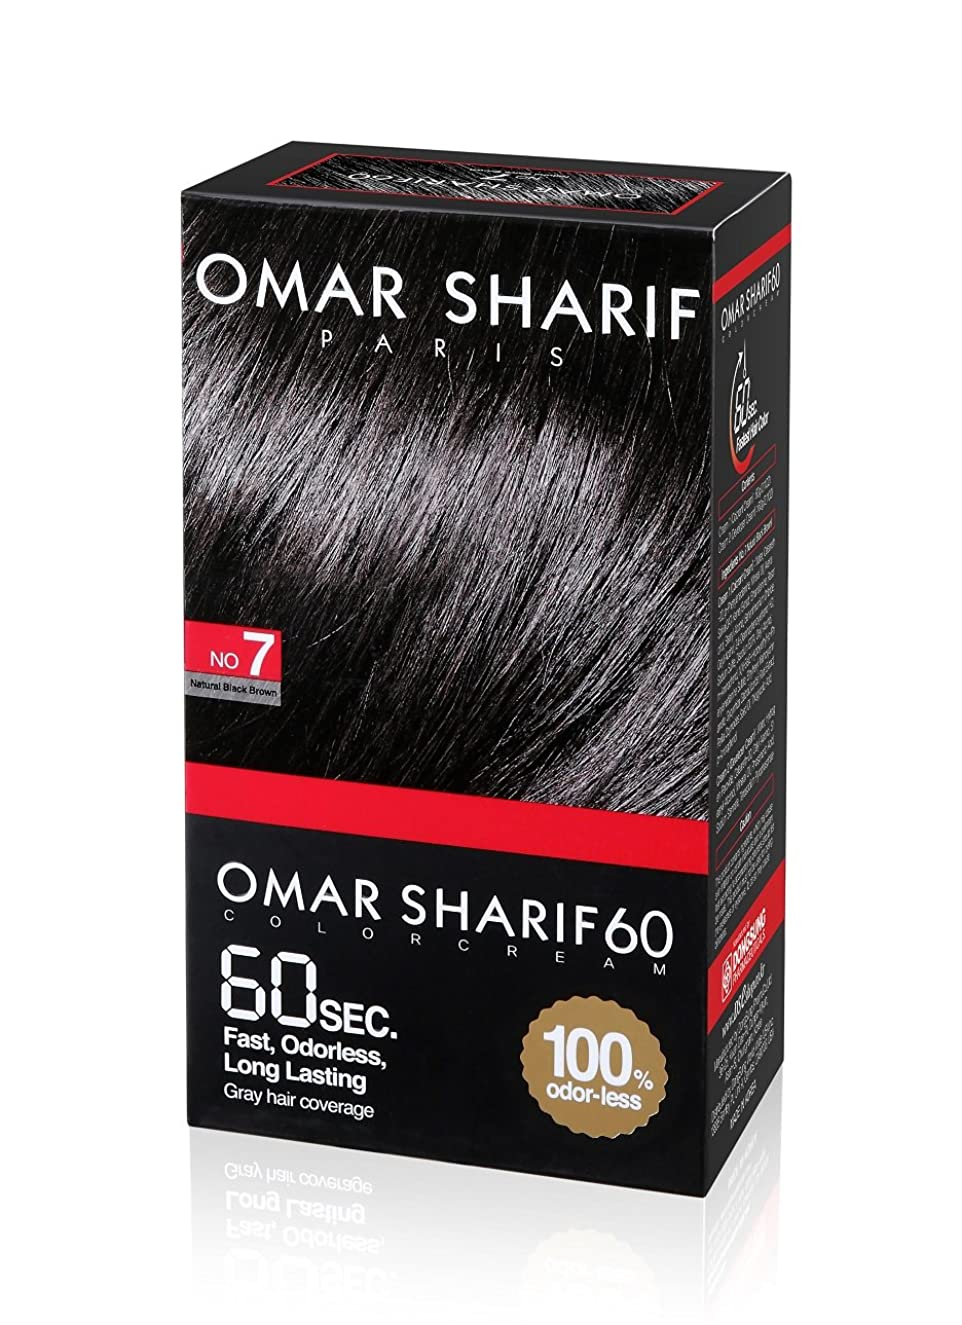 Omar Sharif Speedy Hair Color #7 Natural Black Brown Hair Dye Ammonia Free No Odor Covers Gray Hair in Just 60 Seconds